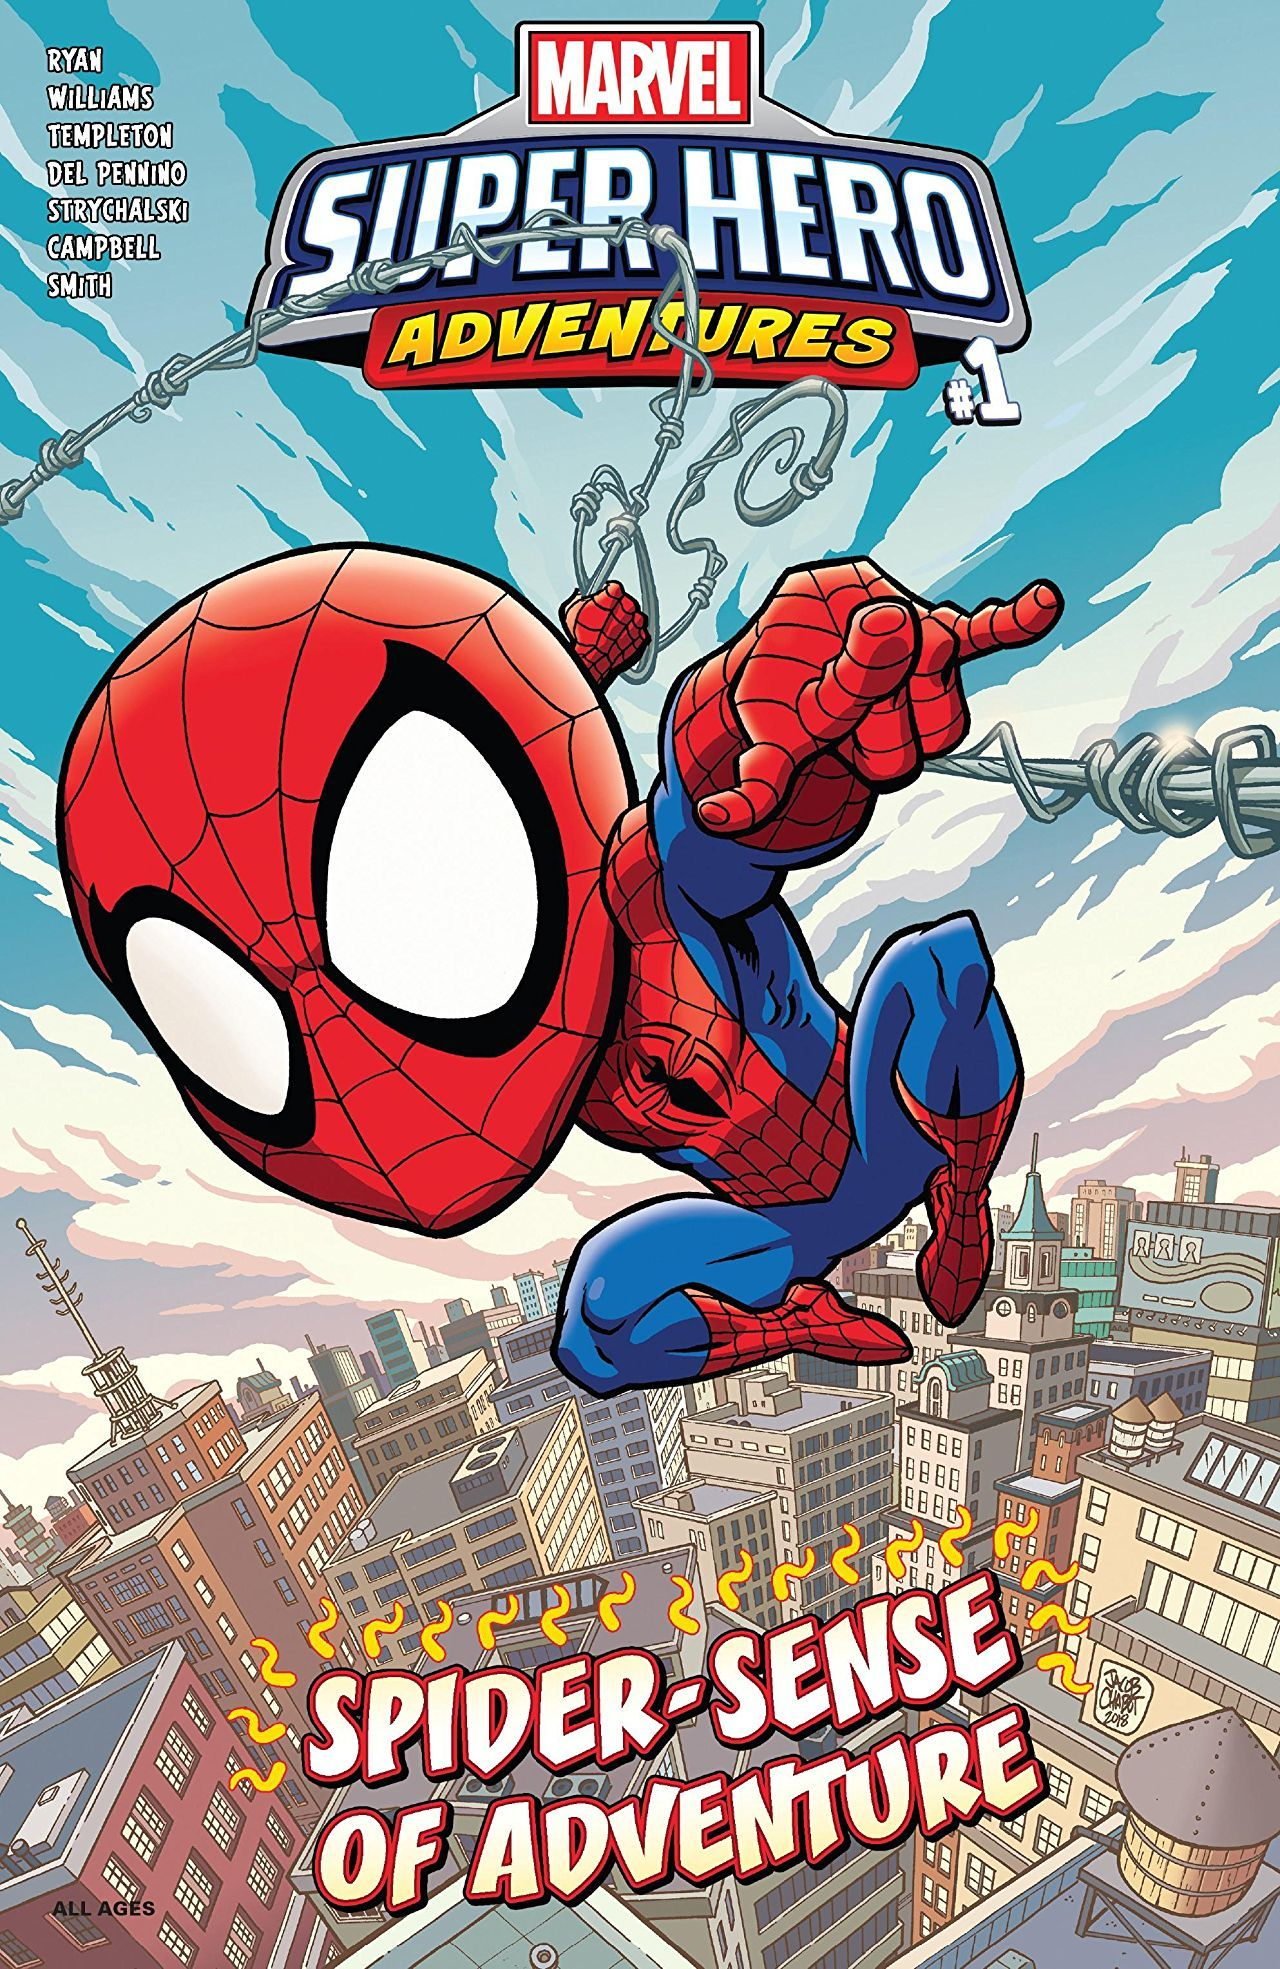 Marvel Super Hero Adventures: Spider-Man - Spider-Sense of Adventure Vol 1 1